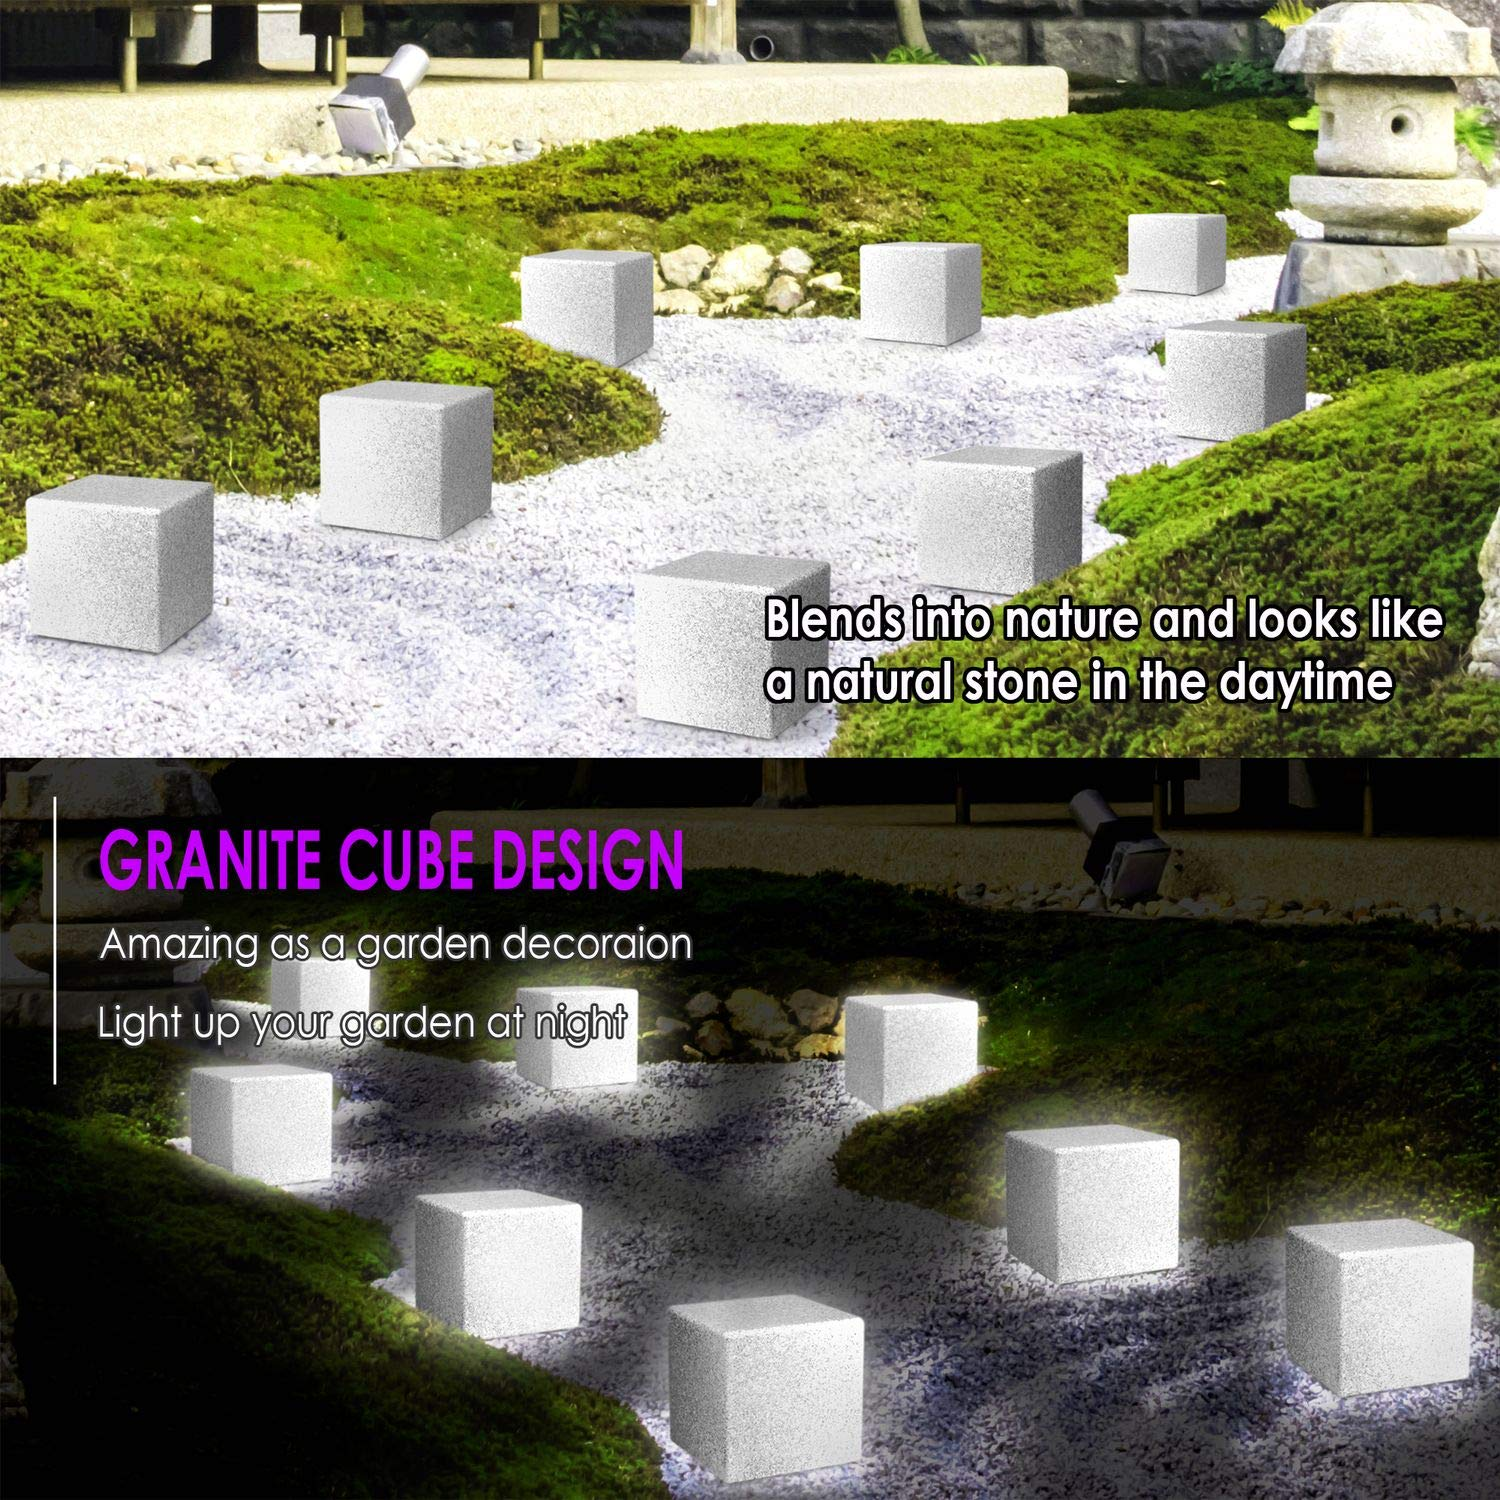 INNOKA LED Cube Light: 8-inch IP65 Waterproof Outdoor Party Bedroom 16 RGB Color Changing 4 Lighting Effects for Pool Cordless /& Rechargeable Decorative Dimmable Mood Lamp with Remote Control